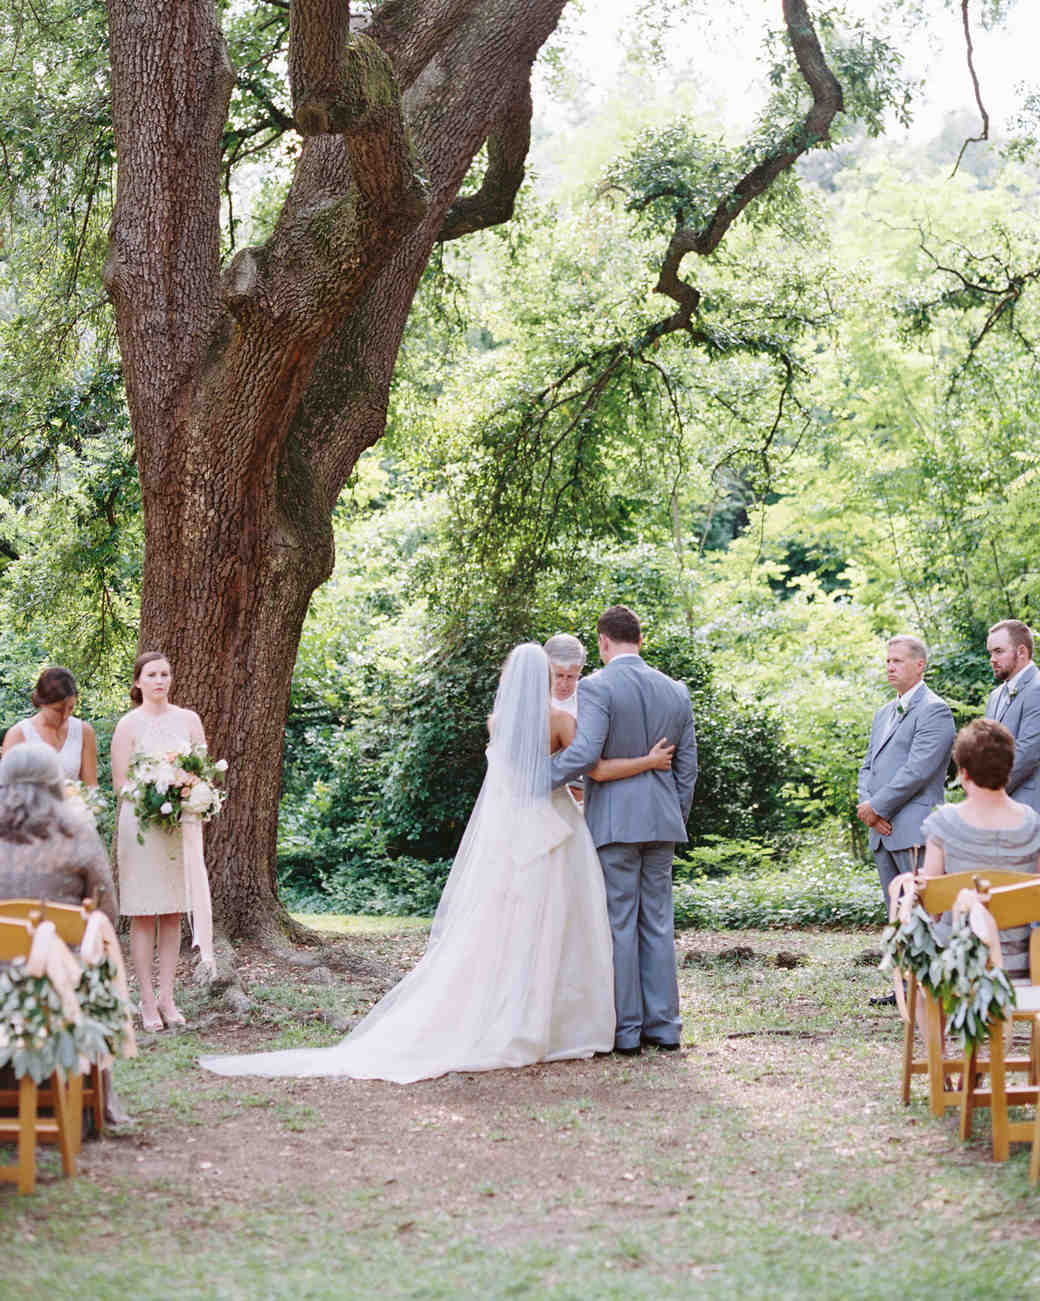 Your Wedding Ceremony Etiquette Questions Answered